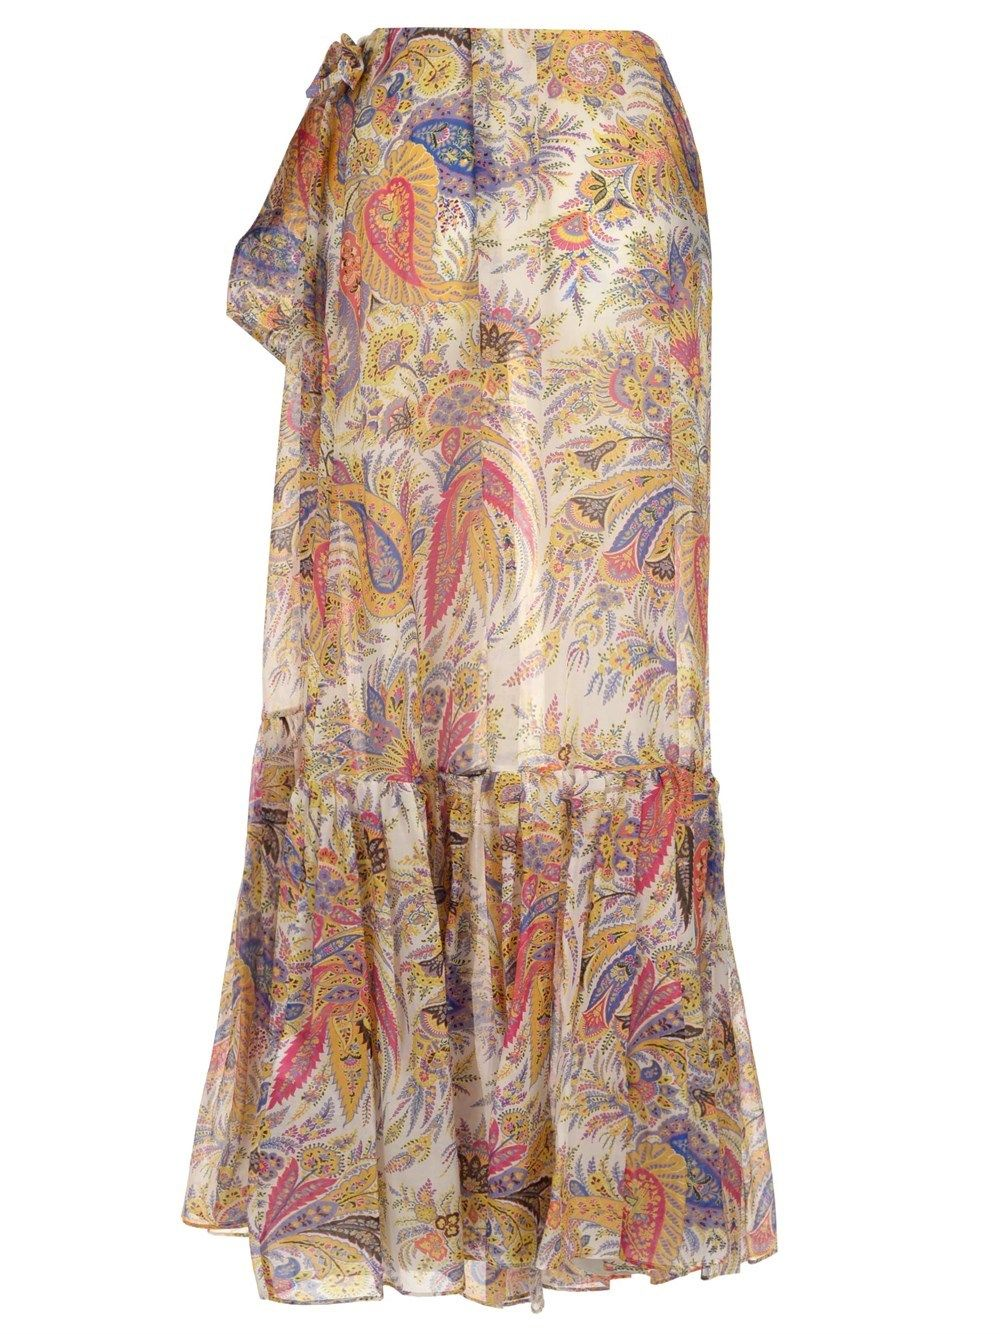 ETRO Cottons ETRO WOMEN'S MULTICOLOR OTHER MATERIALS SKIRT